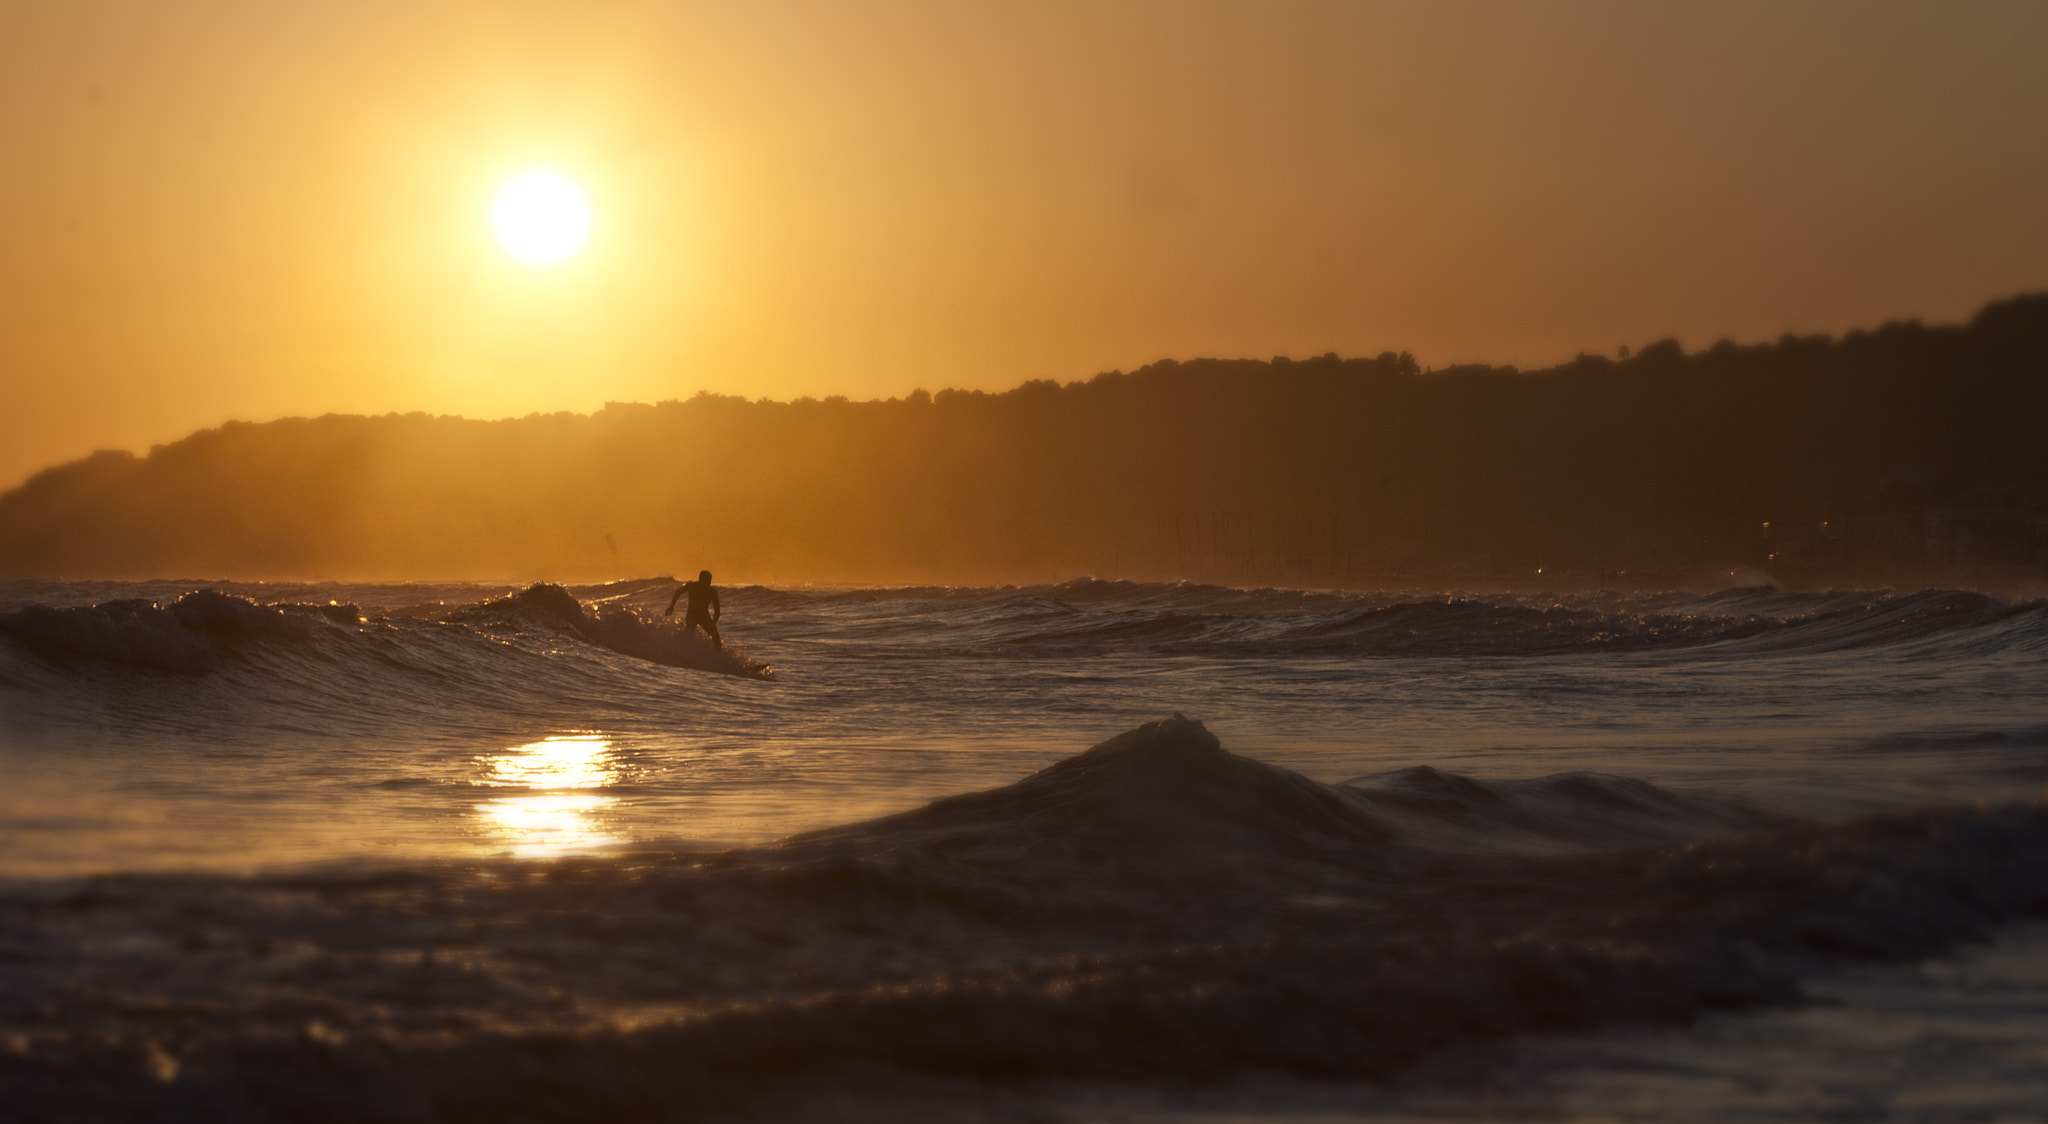 Photograph Surf Spain by Lars Prignitz on 500px